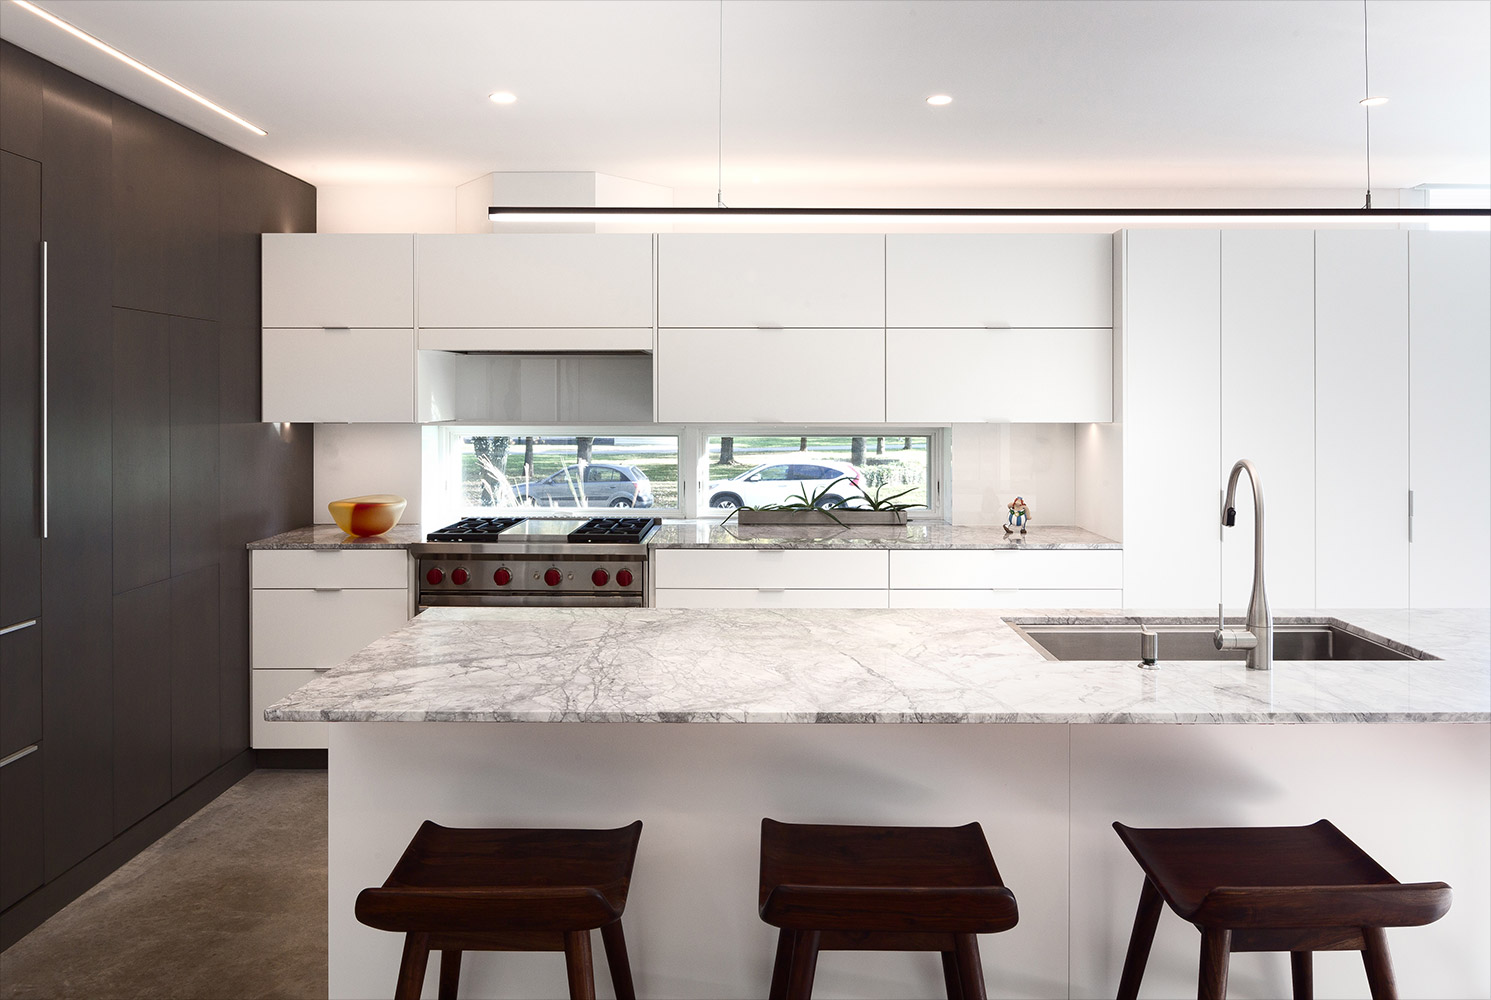 Kitchen with marble countertops undermounted sink, gas range with hidden vent hood, and gray oak cabinetry